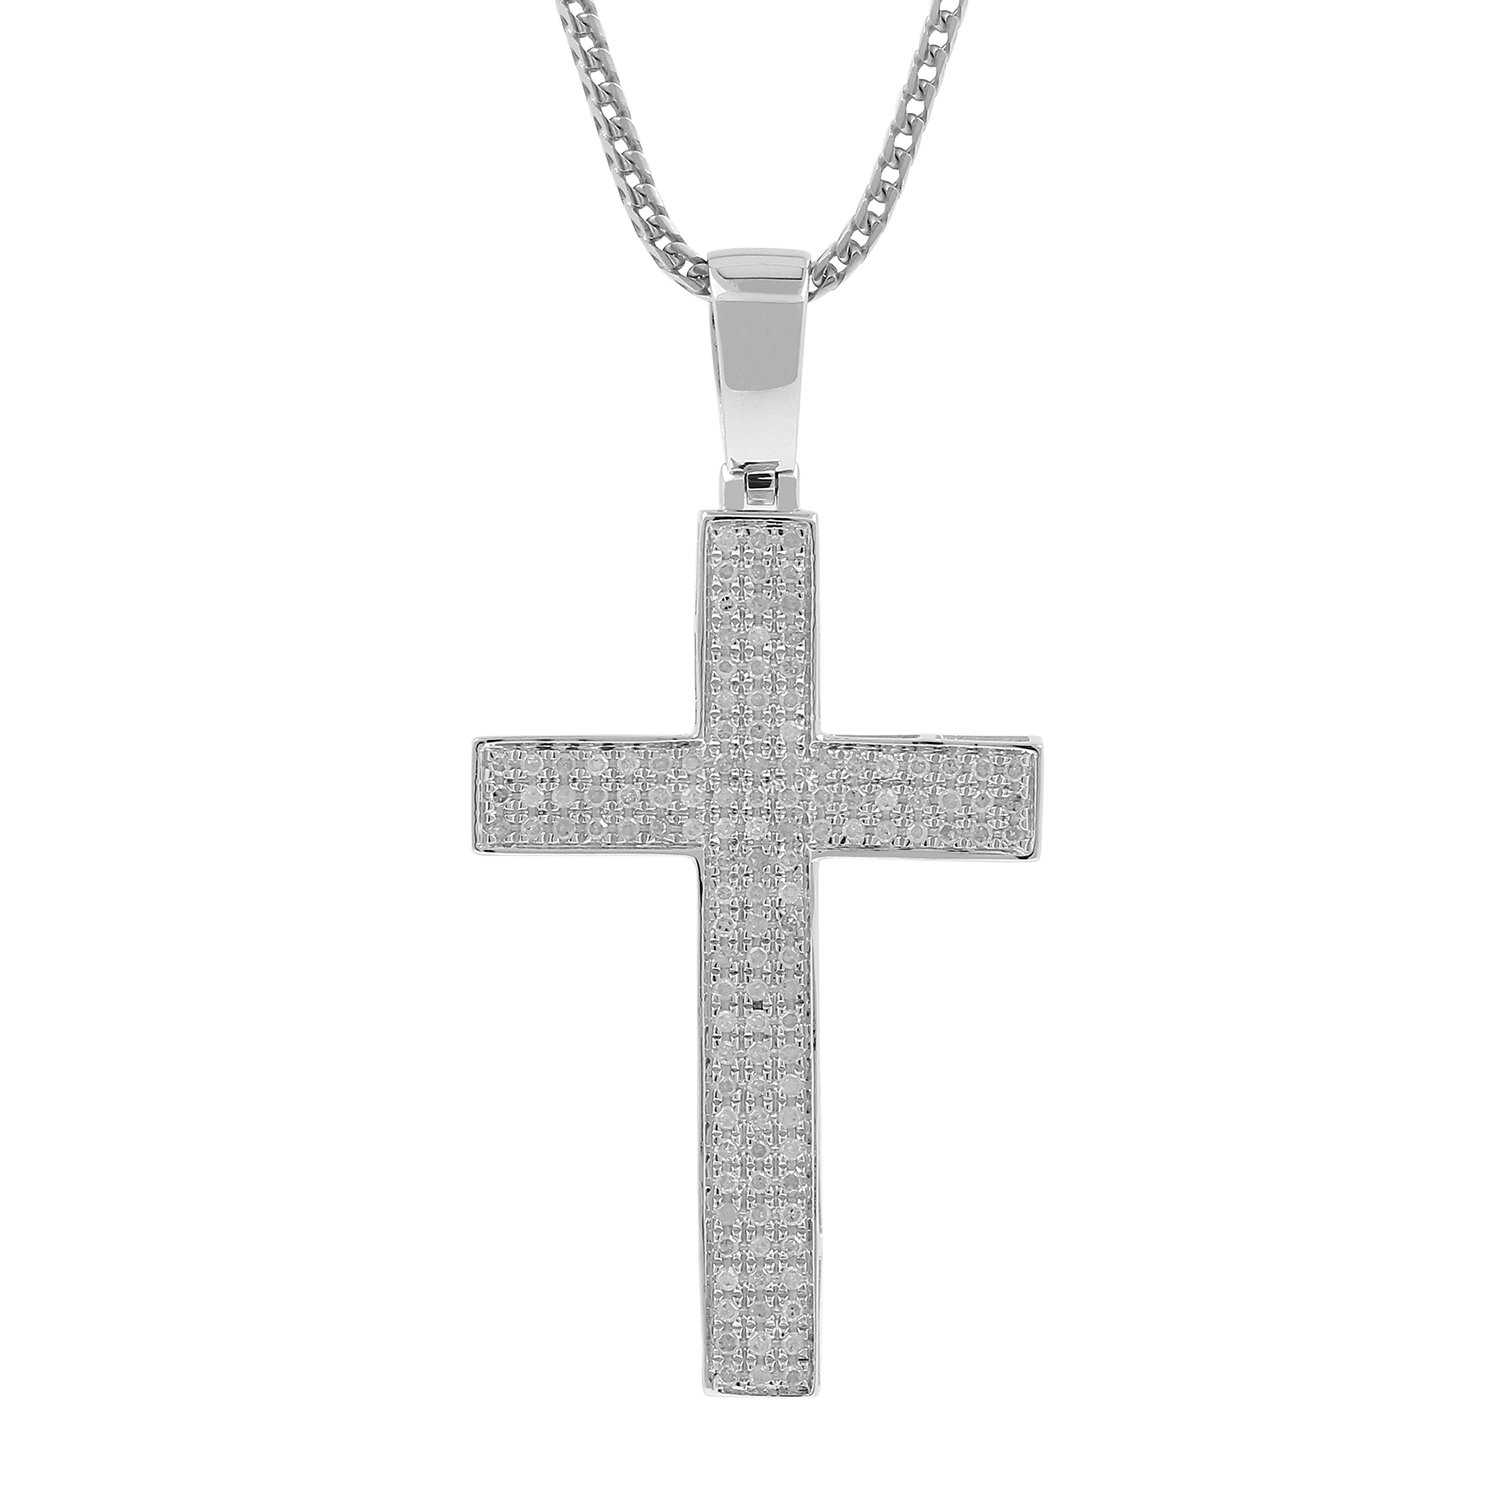 0.52ct Diamond Pave 3 Row Mens Hip Hop Cross Pendant Necklace in 925 Silver (I-J, I3)